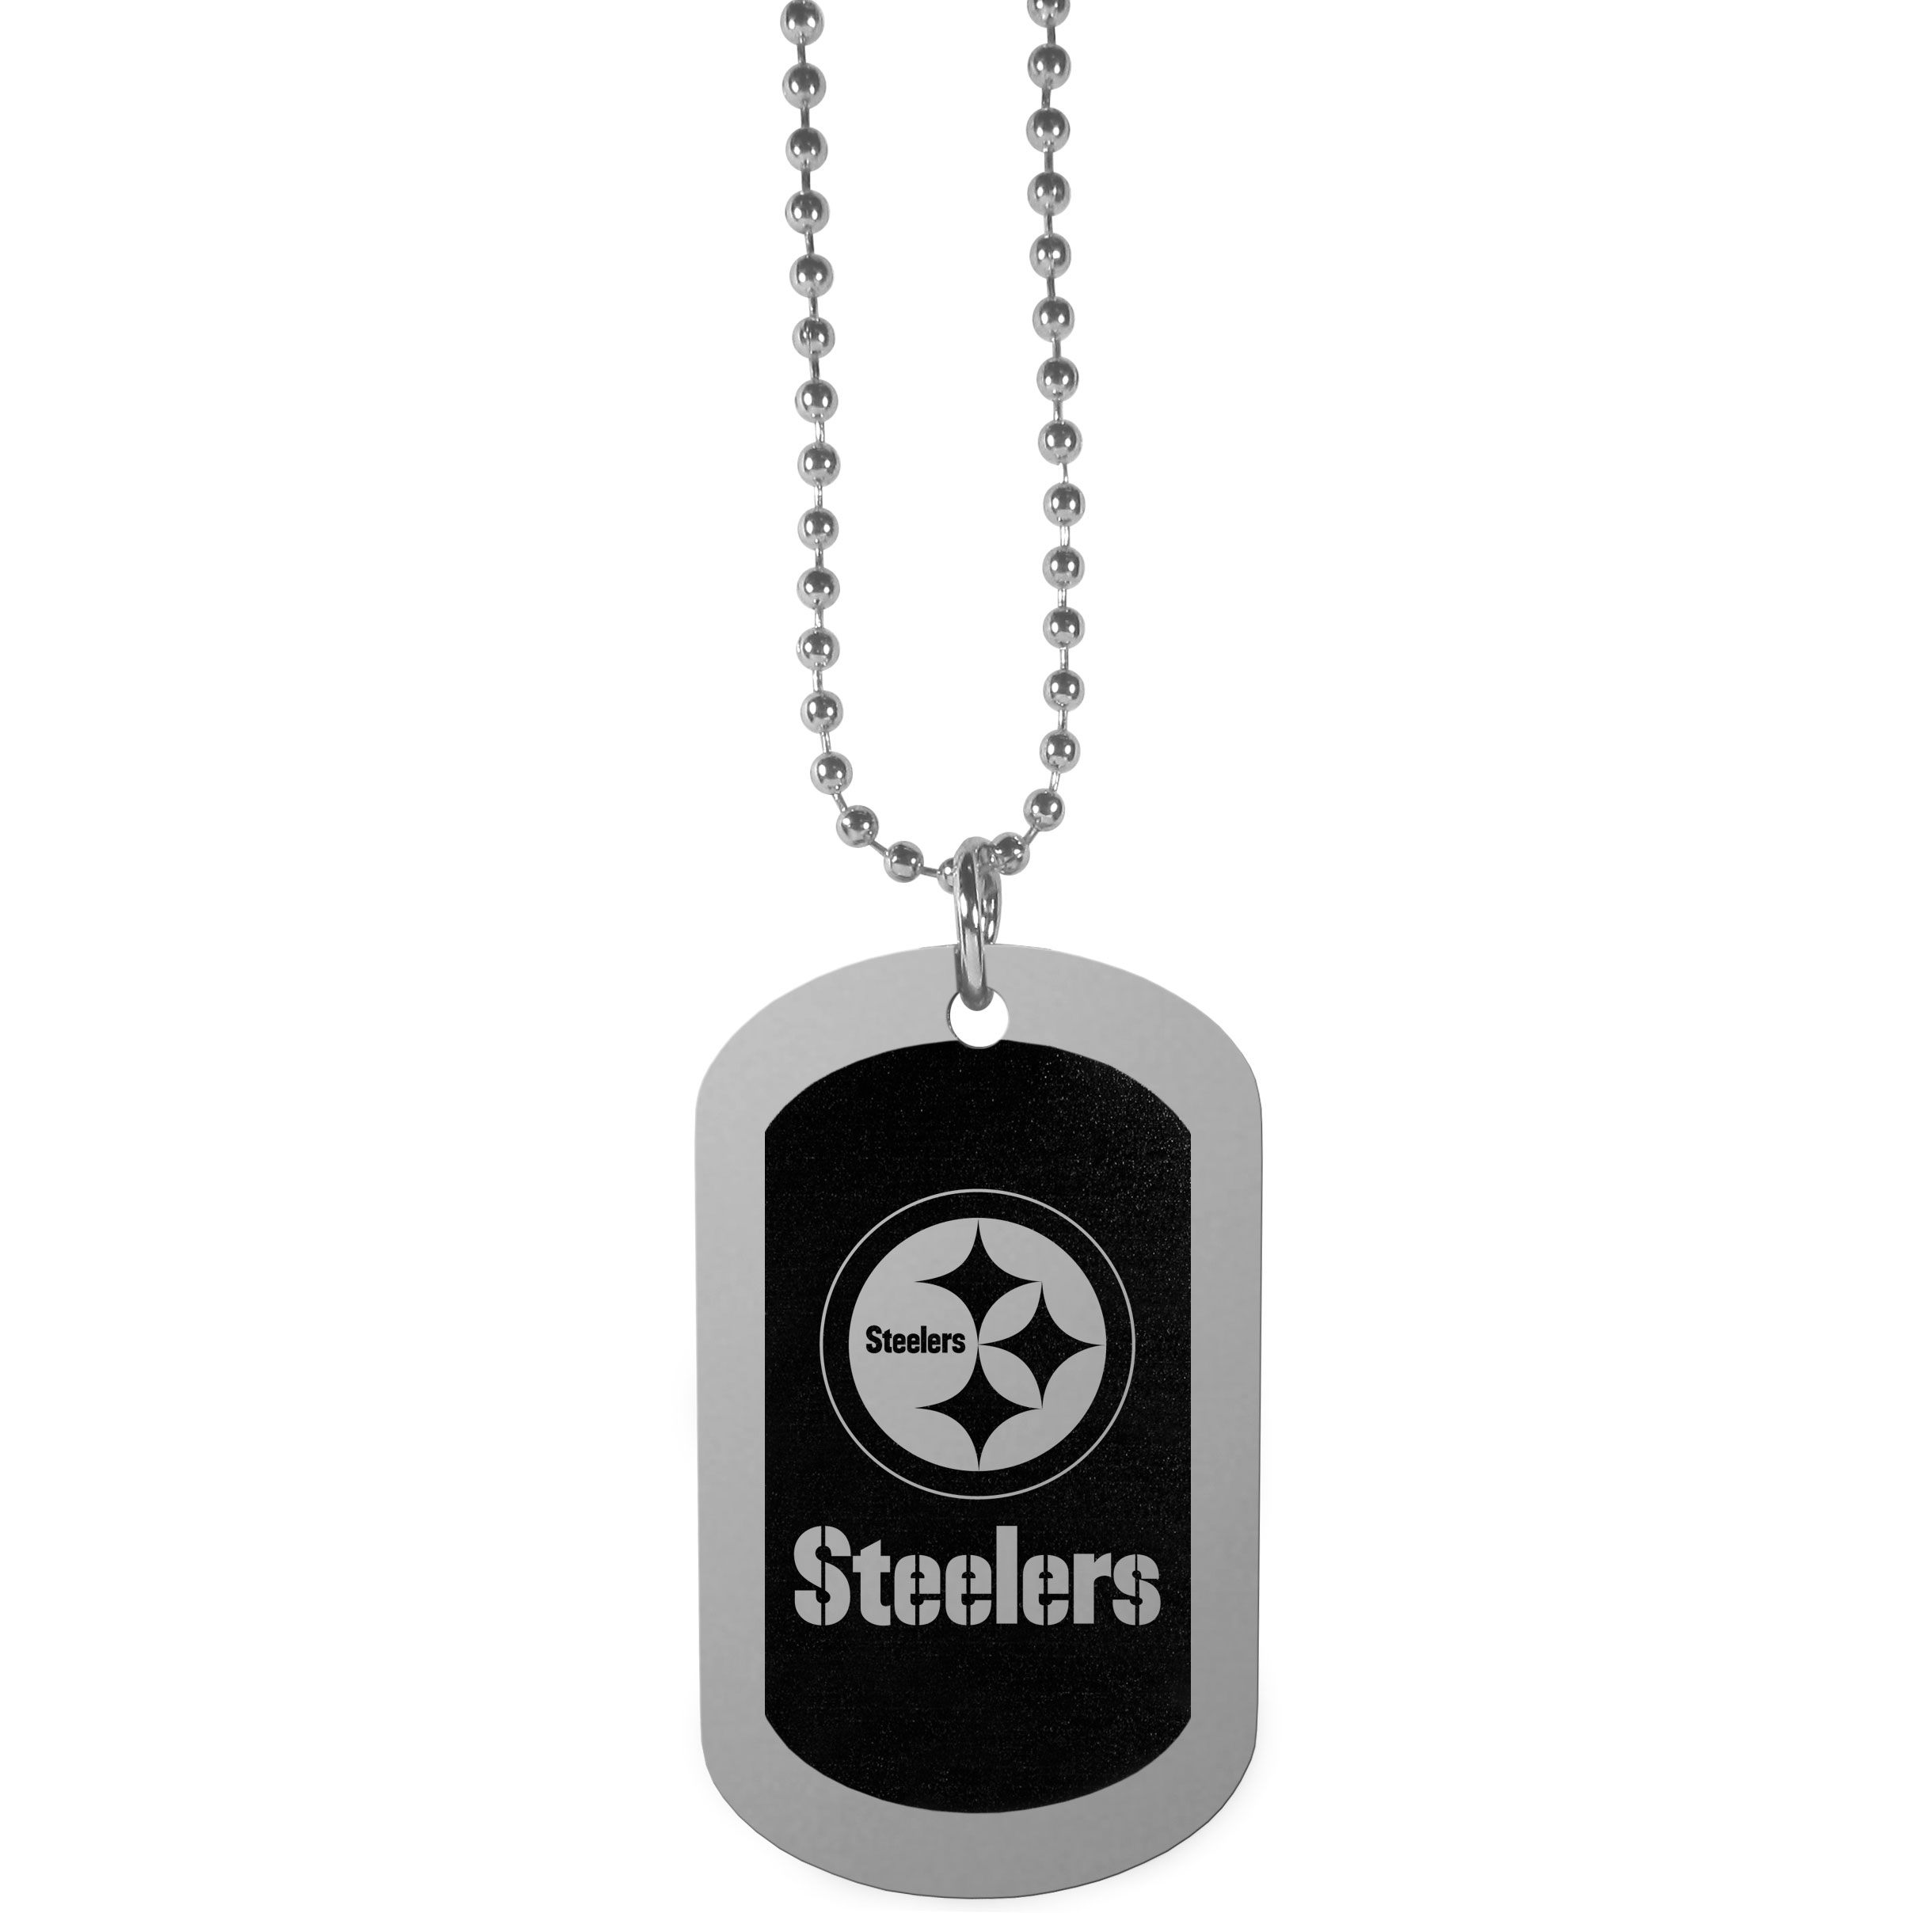 Pittsburgh Steelers Chrome Tag Necklace - Dog tag necklaces are a fashion statement that is here to stay. The sporty version of the classic tag features a black printed over a high polish tag to create a bold and sporty look. The tag comes on a 26 inch ball chain with a ball and joint clasp. Any Pittsburgh Steelers would be proud to wear this attractive fashion accessory.